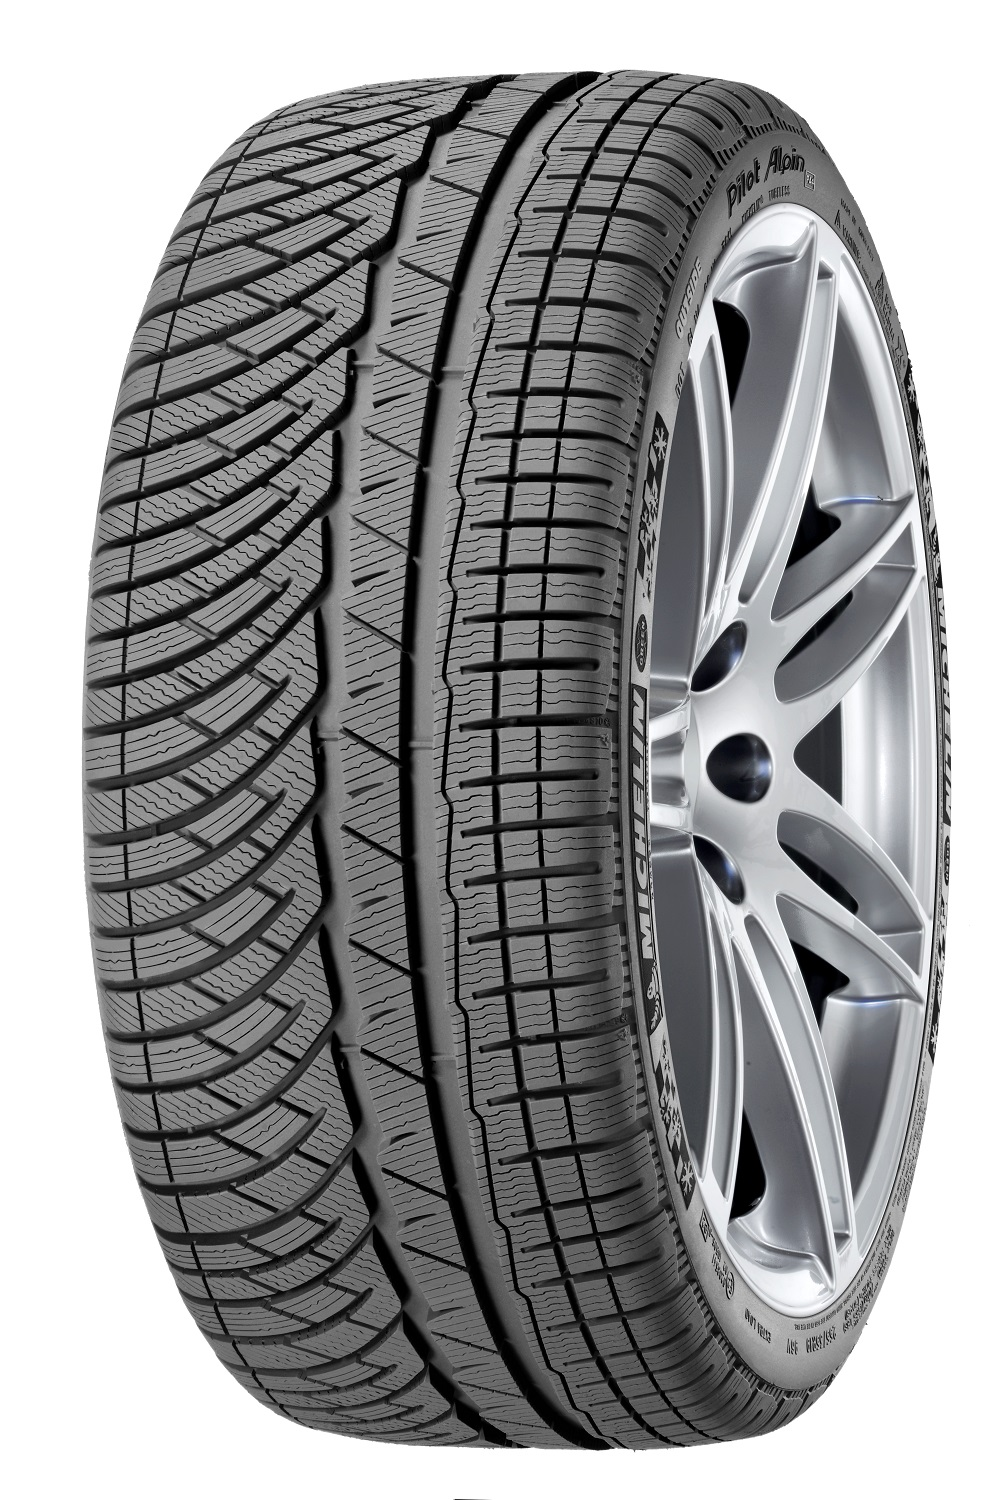 Anvelopa iarna MICHELIN PILOT ALPIN 4 XL 215/45 R18 93V